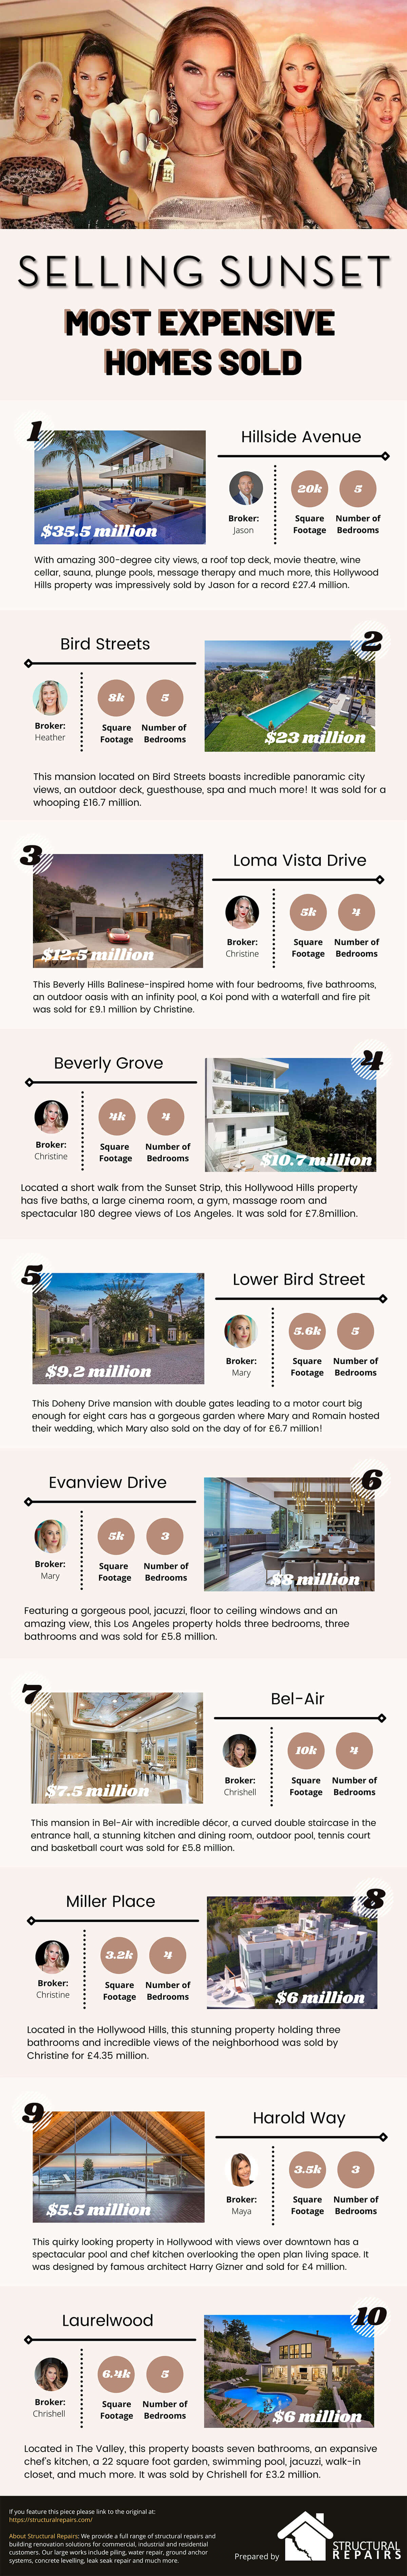 Selling Sunset Infographic